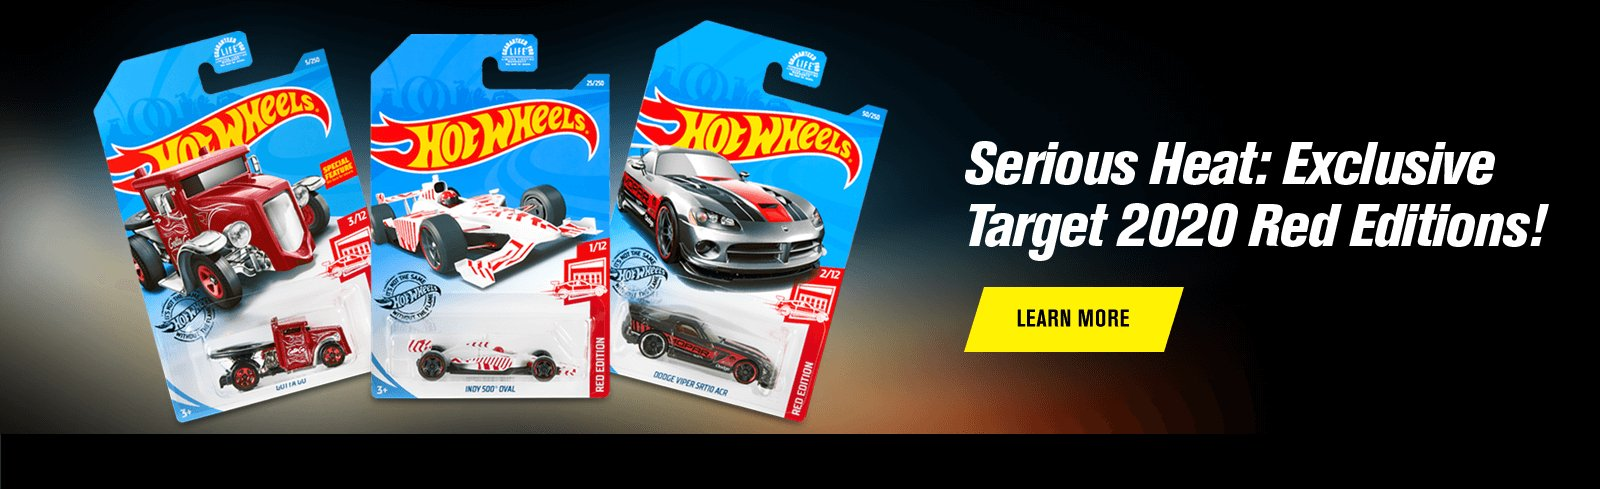 Serious Heat: Exclusive Target 2020 Red Editions!